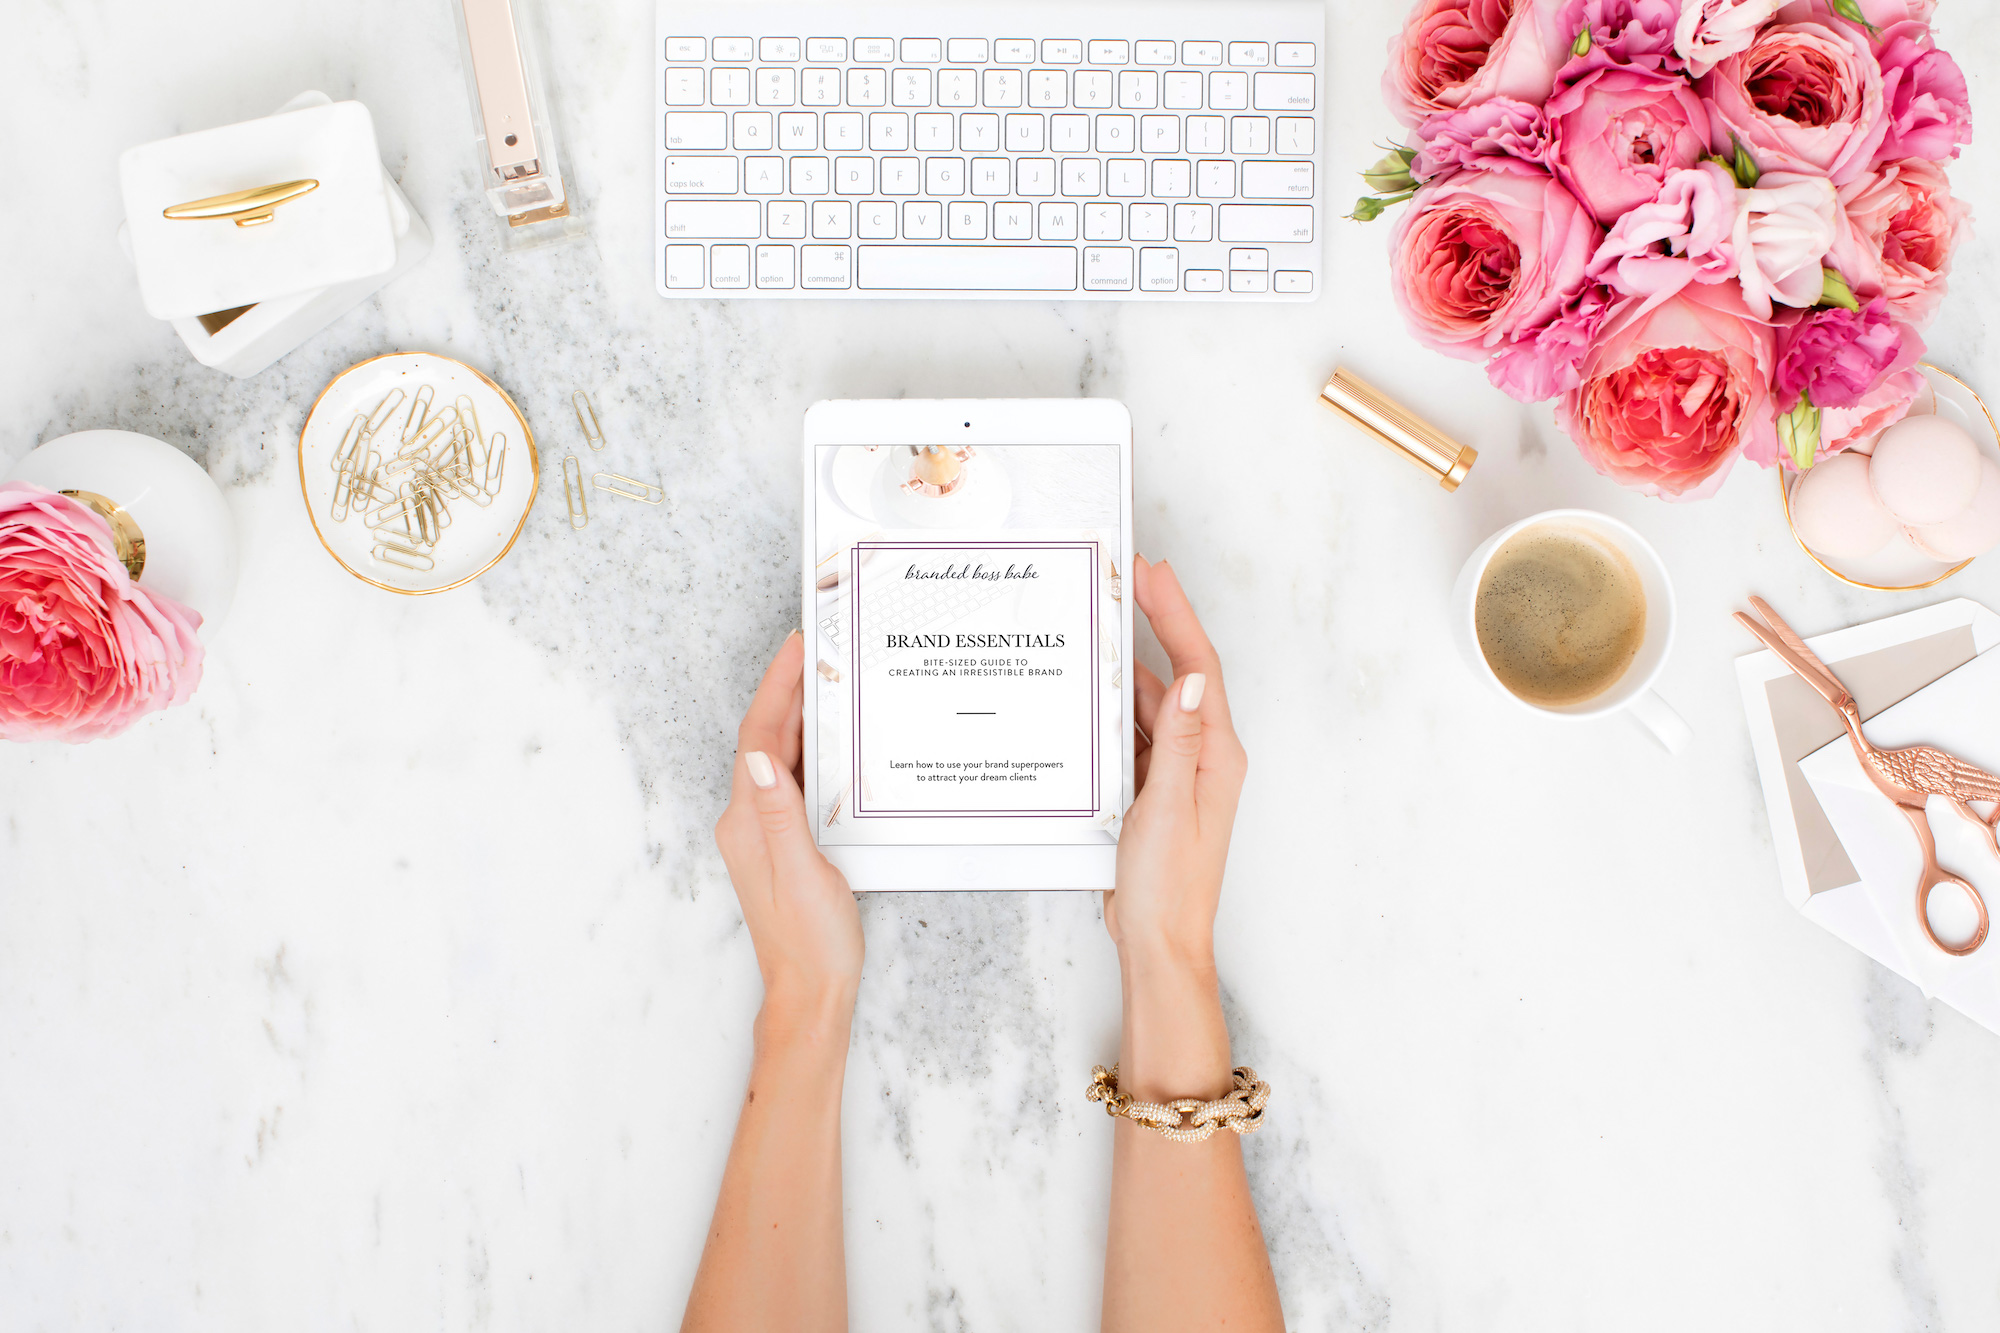 Brand Essentials for Coaches is an interactive ebook and workbook that will help you create an irresistible brand for your coaching business even if you're not a designer and even if you're on a budget.